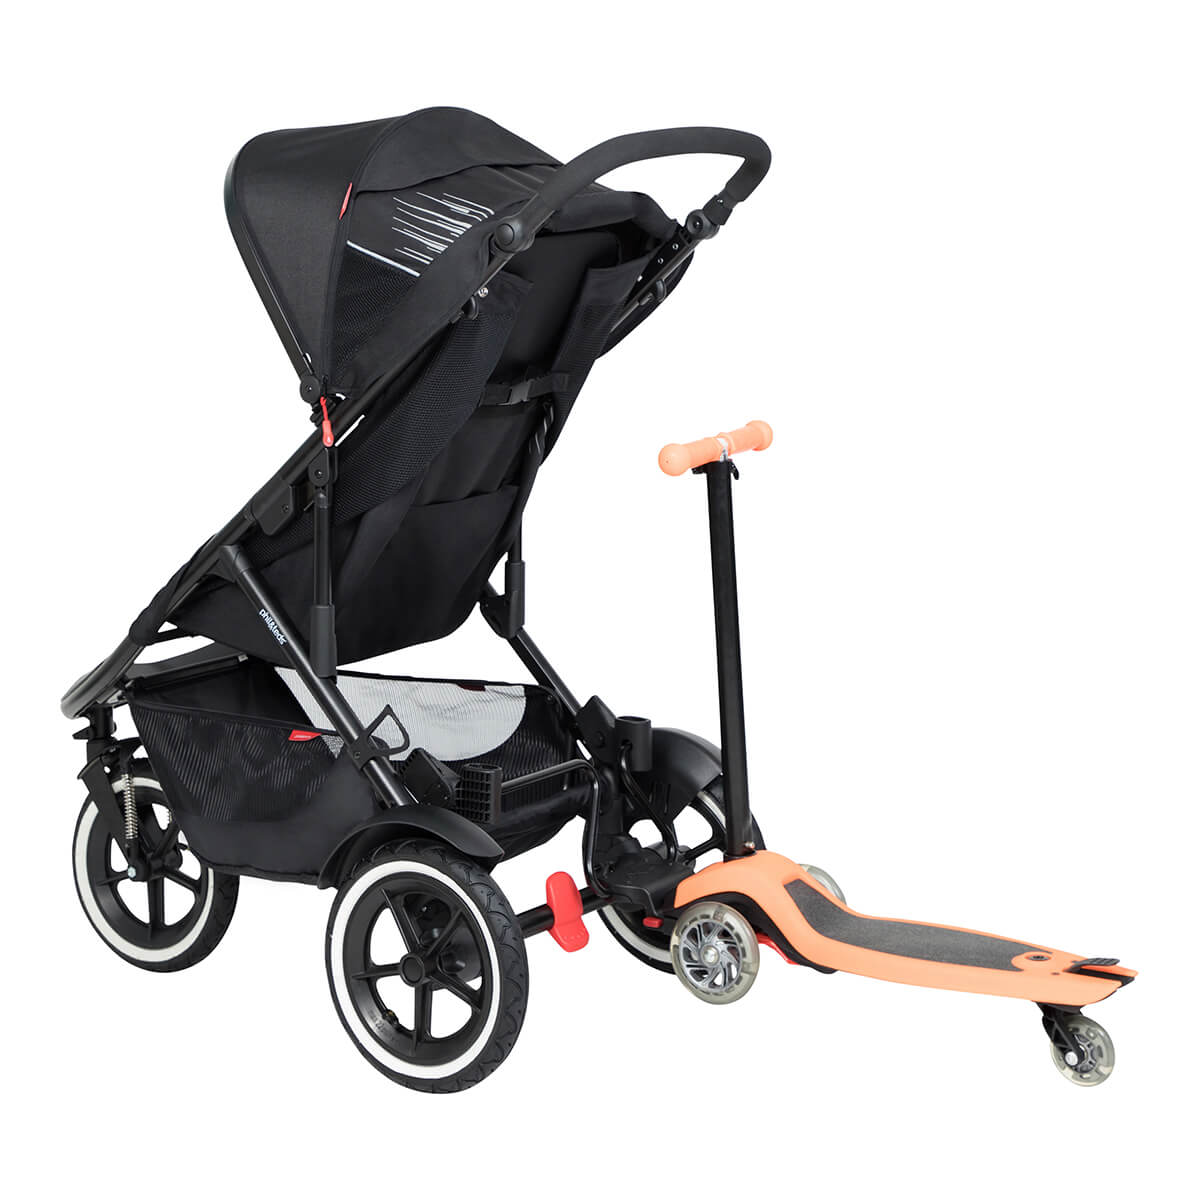 https://cdn.accentuate.io/4509867278433/19793940119722/philteds-sport-buggy-with-freerider-stroller-board-in-rear-v1626485276406.jpg?1200x1200